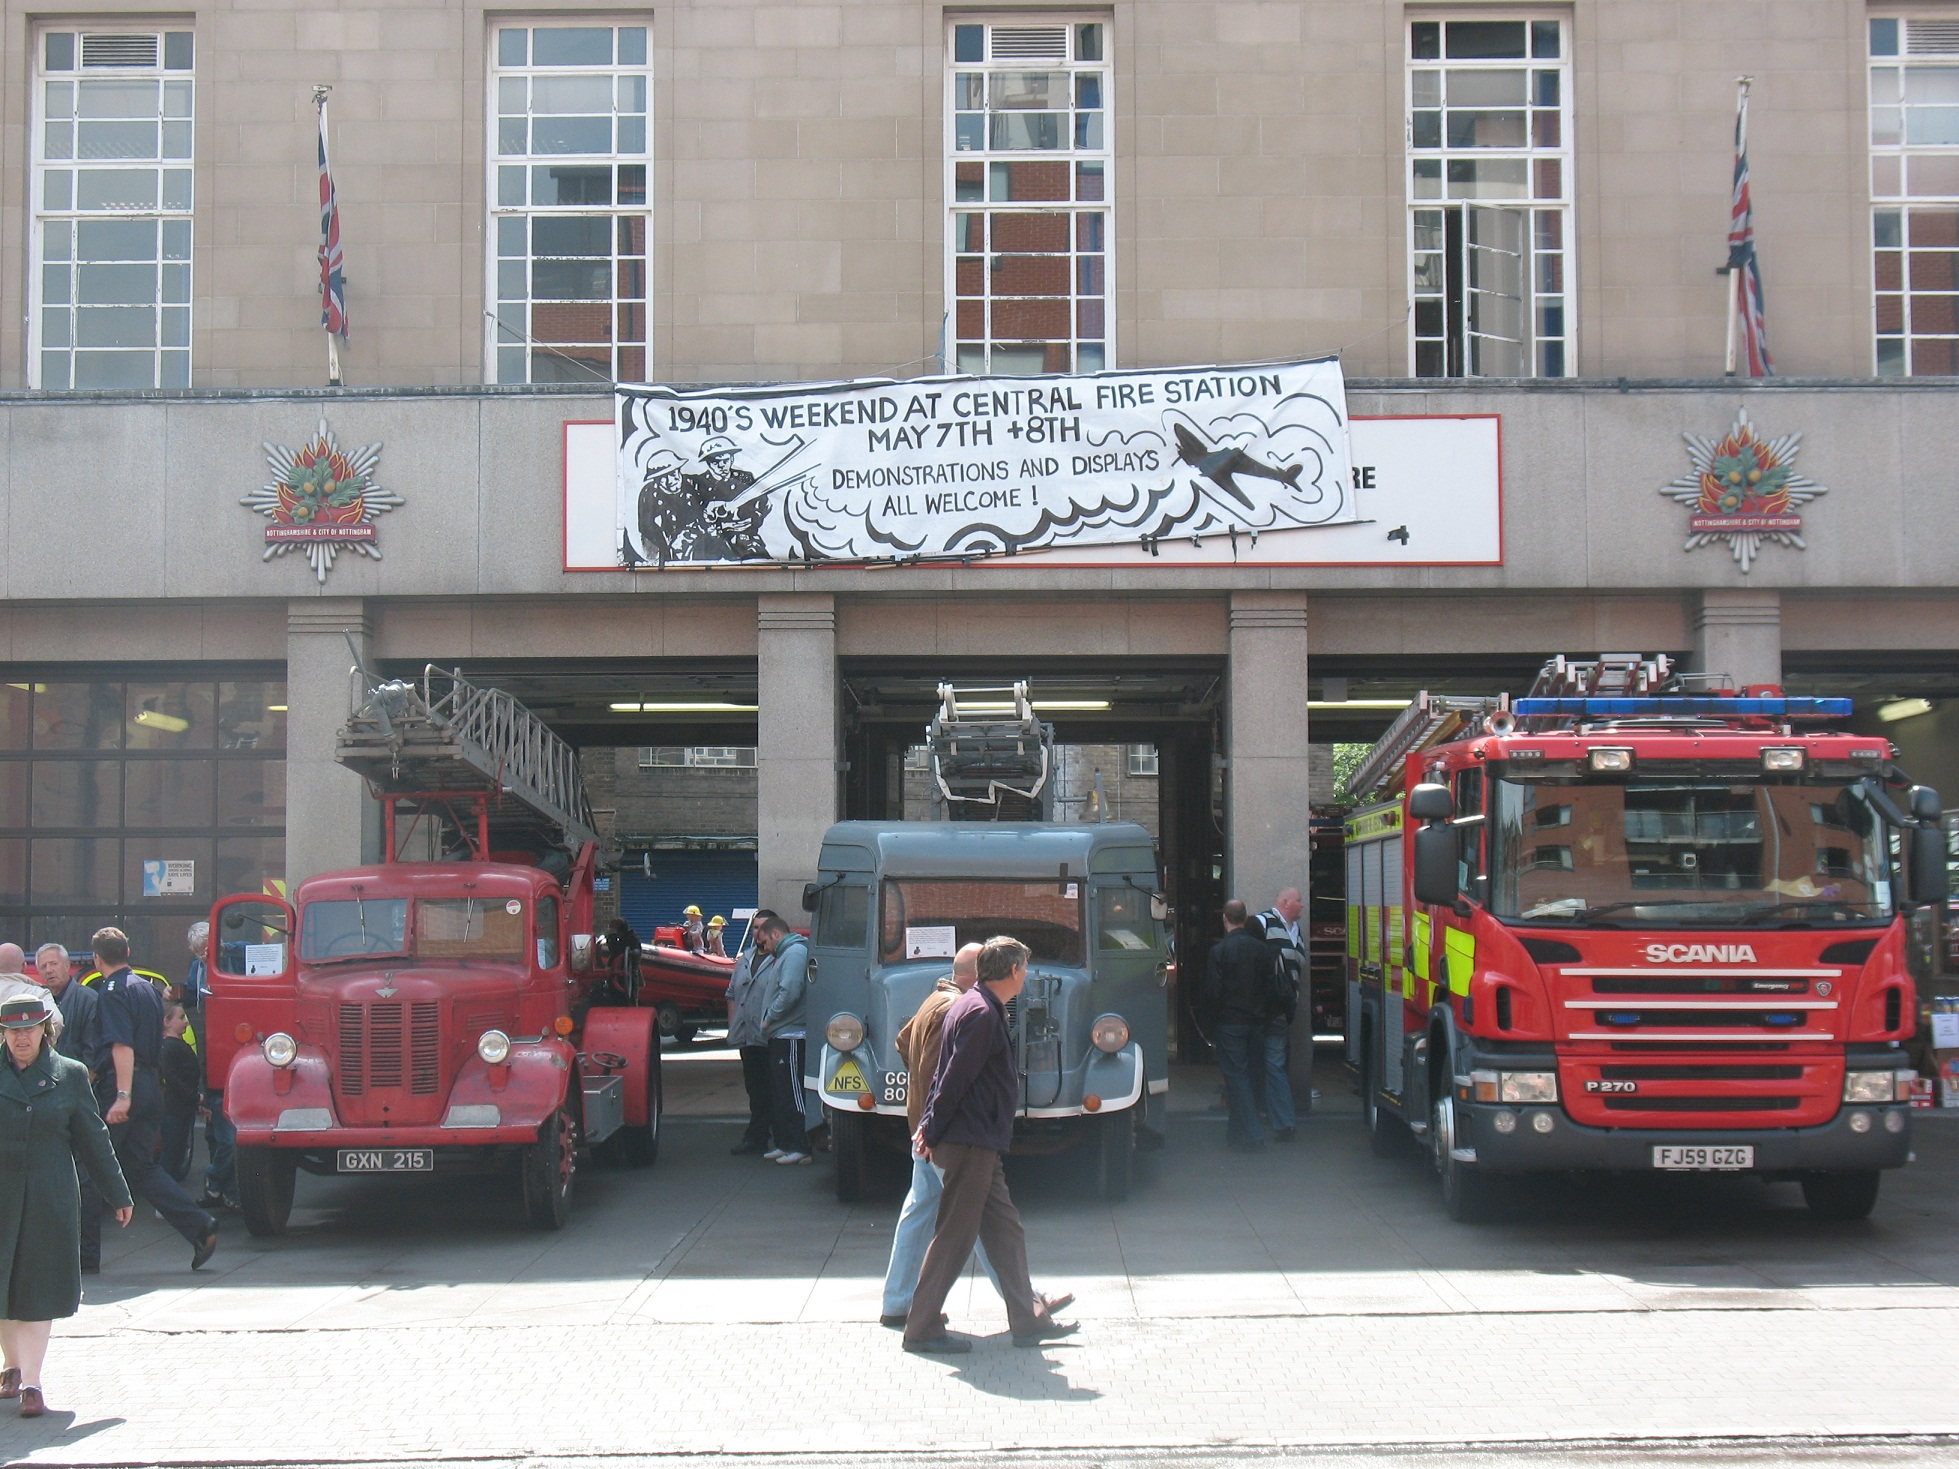 Nottingham Central Fire Station Open Weekend May 2011